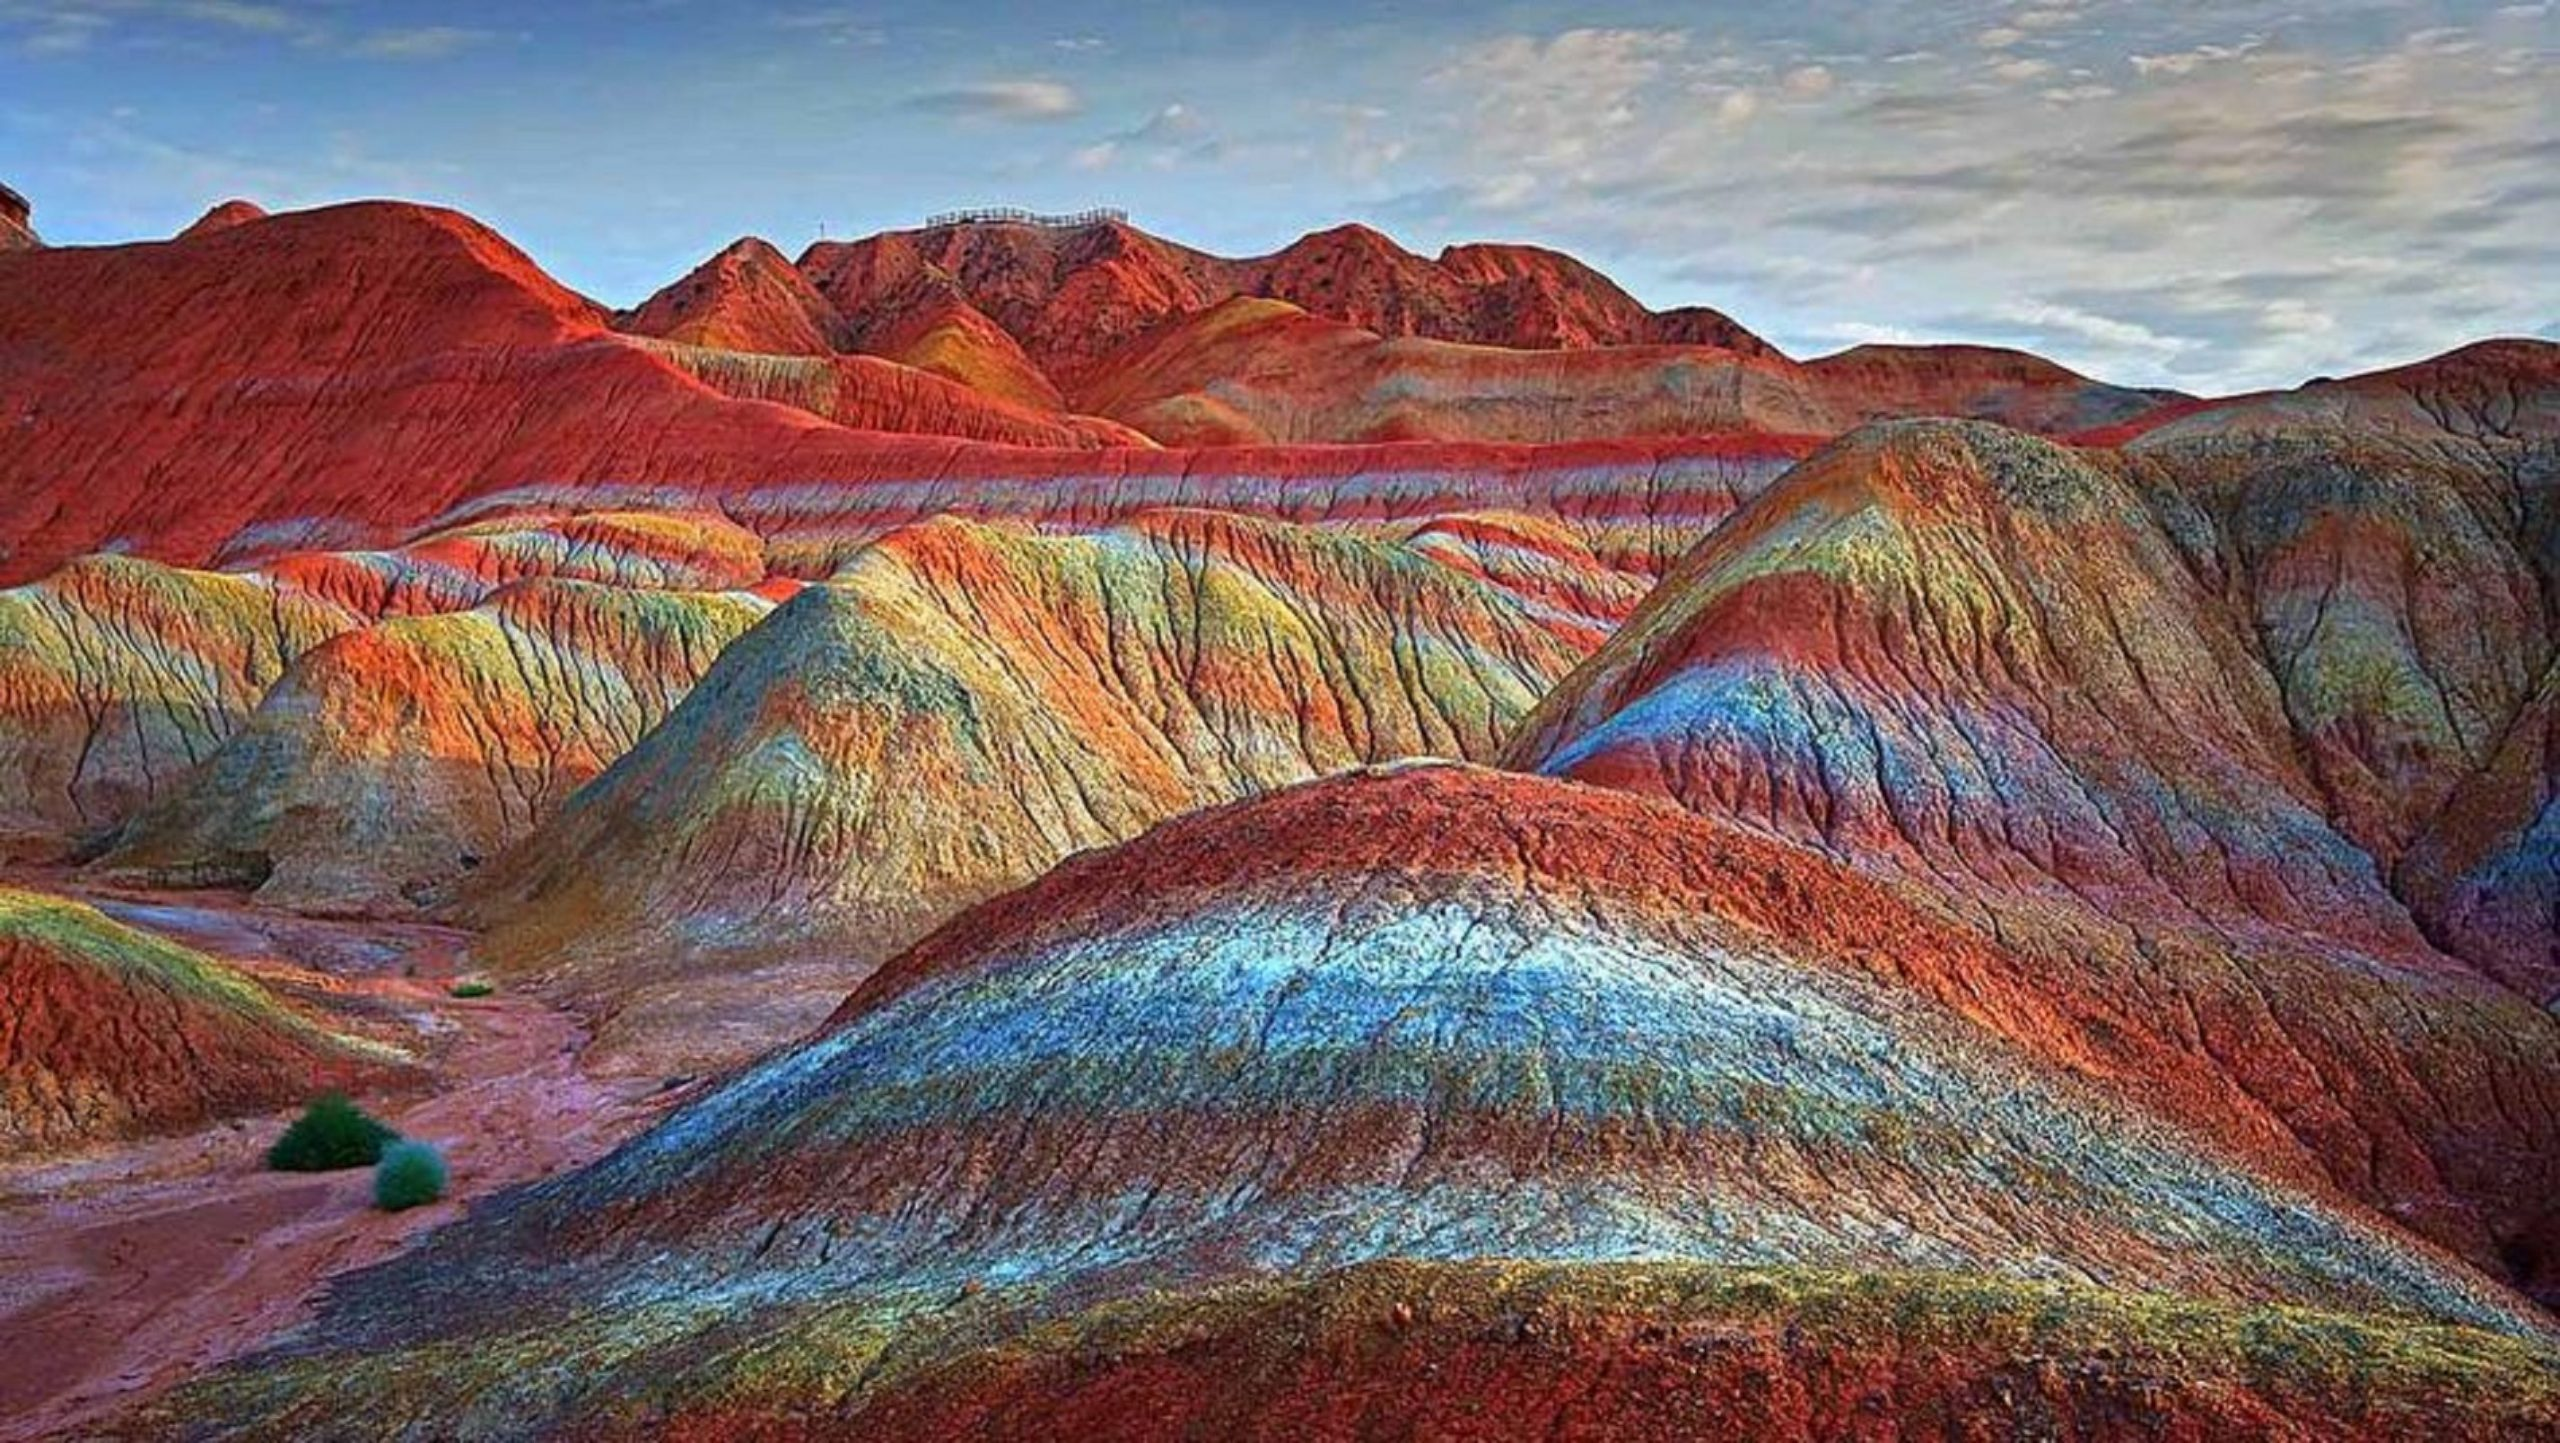 Zhangye Danxia Landform - The Rainbow Mountains of China